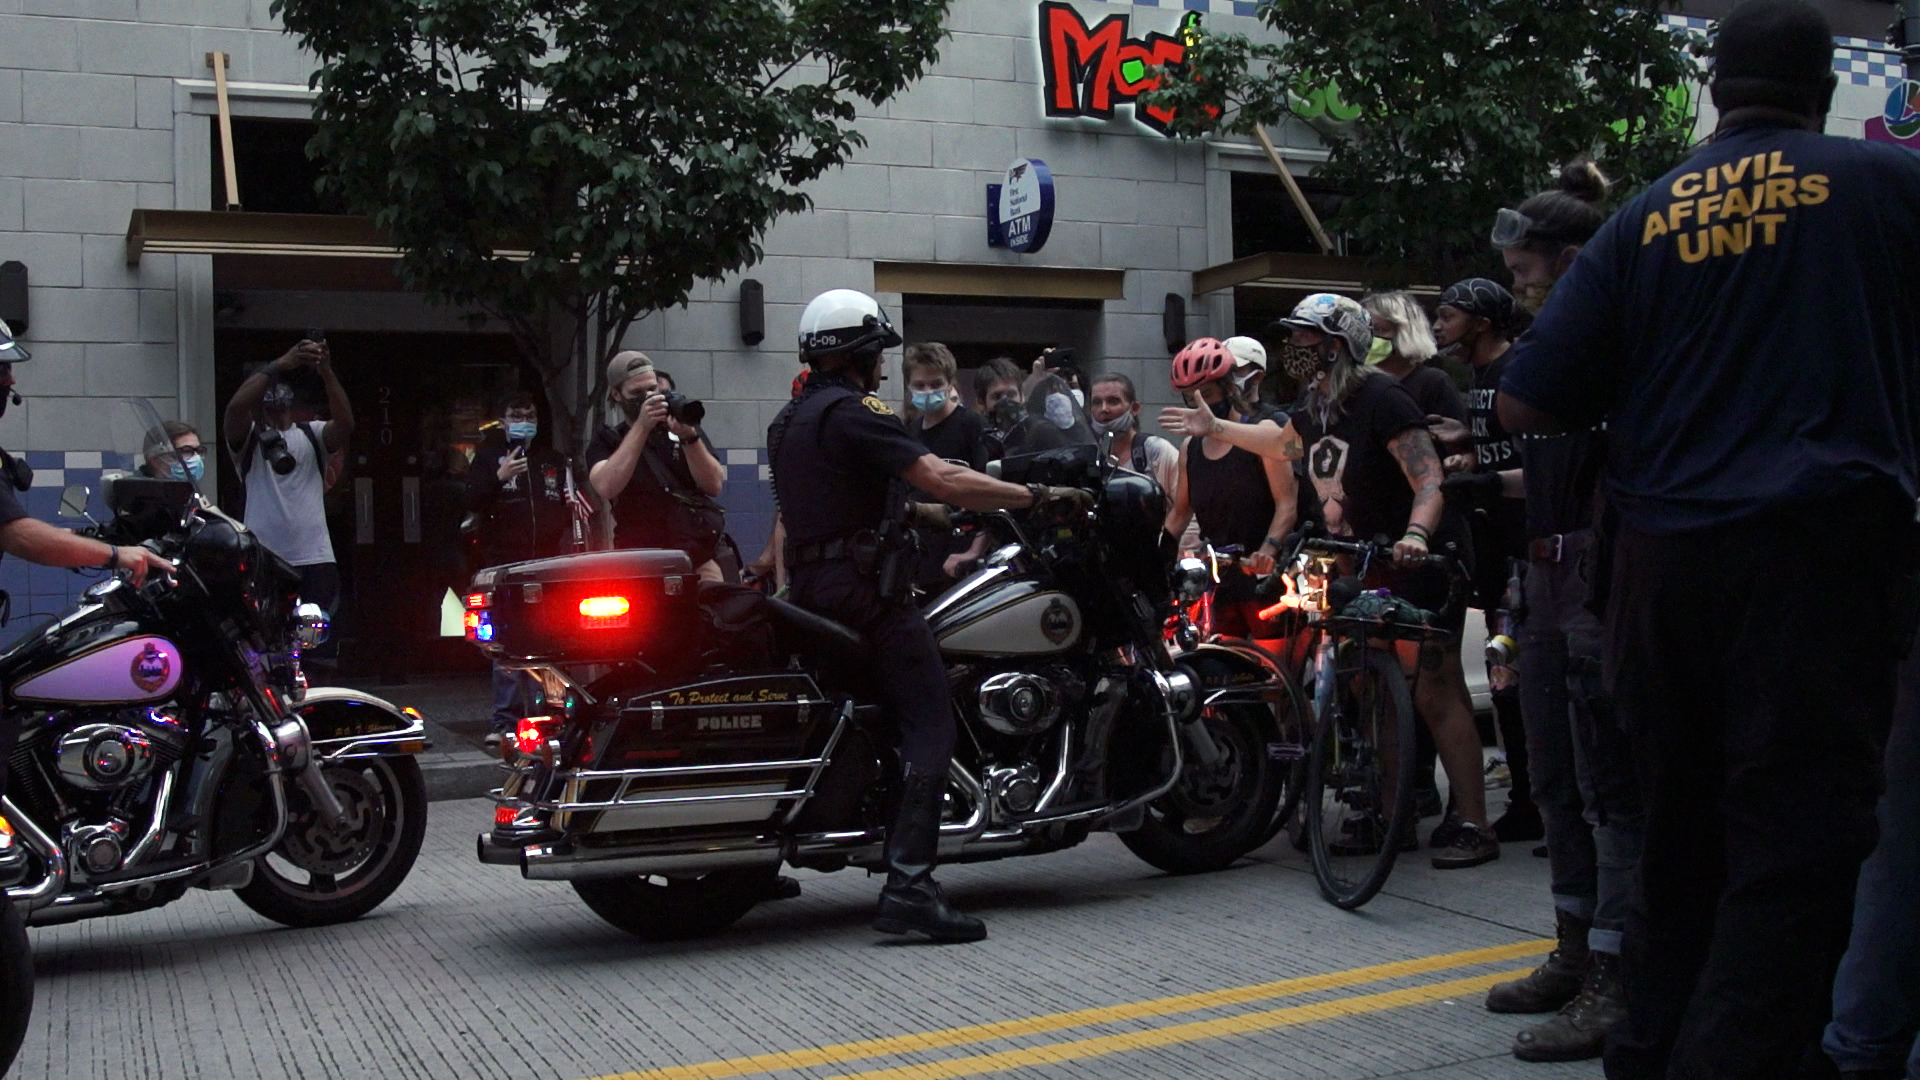 Police officer on motorcycle rolls into a protester on a bicycle who is standing in the street.